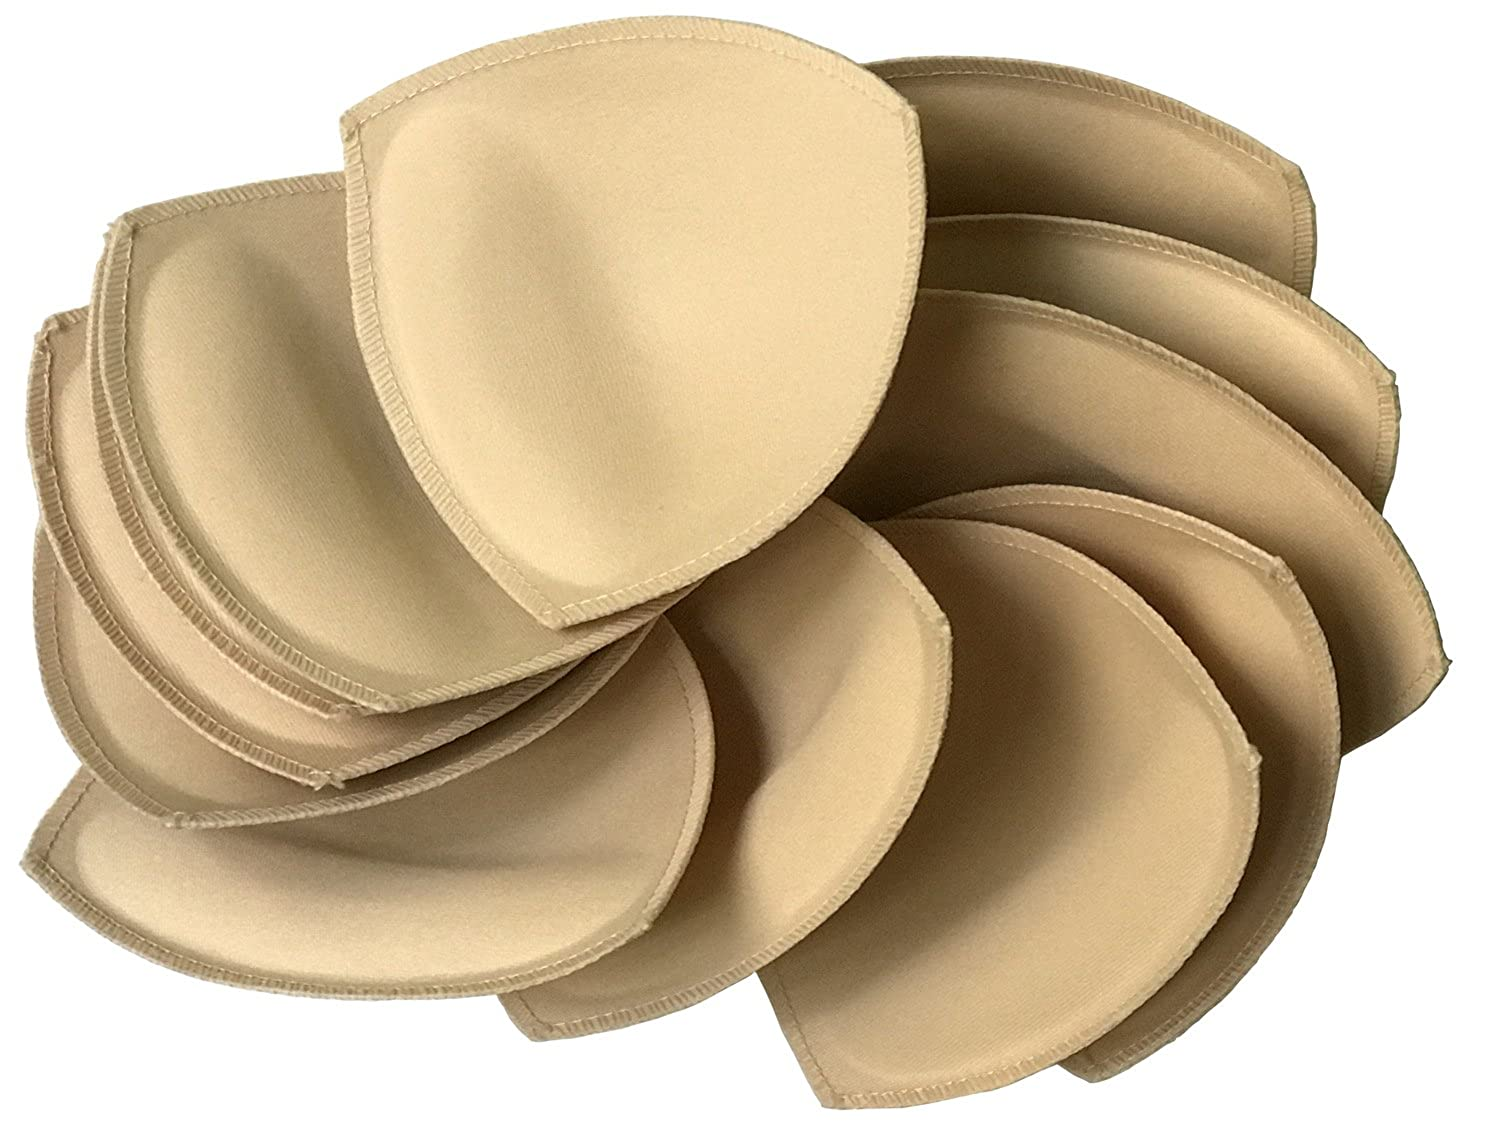 6 pairs Removeable bra pad insert (beige) for sport bra and bikini tops